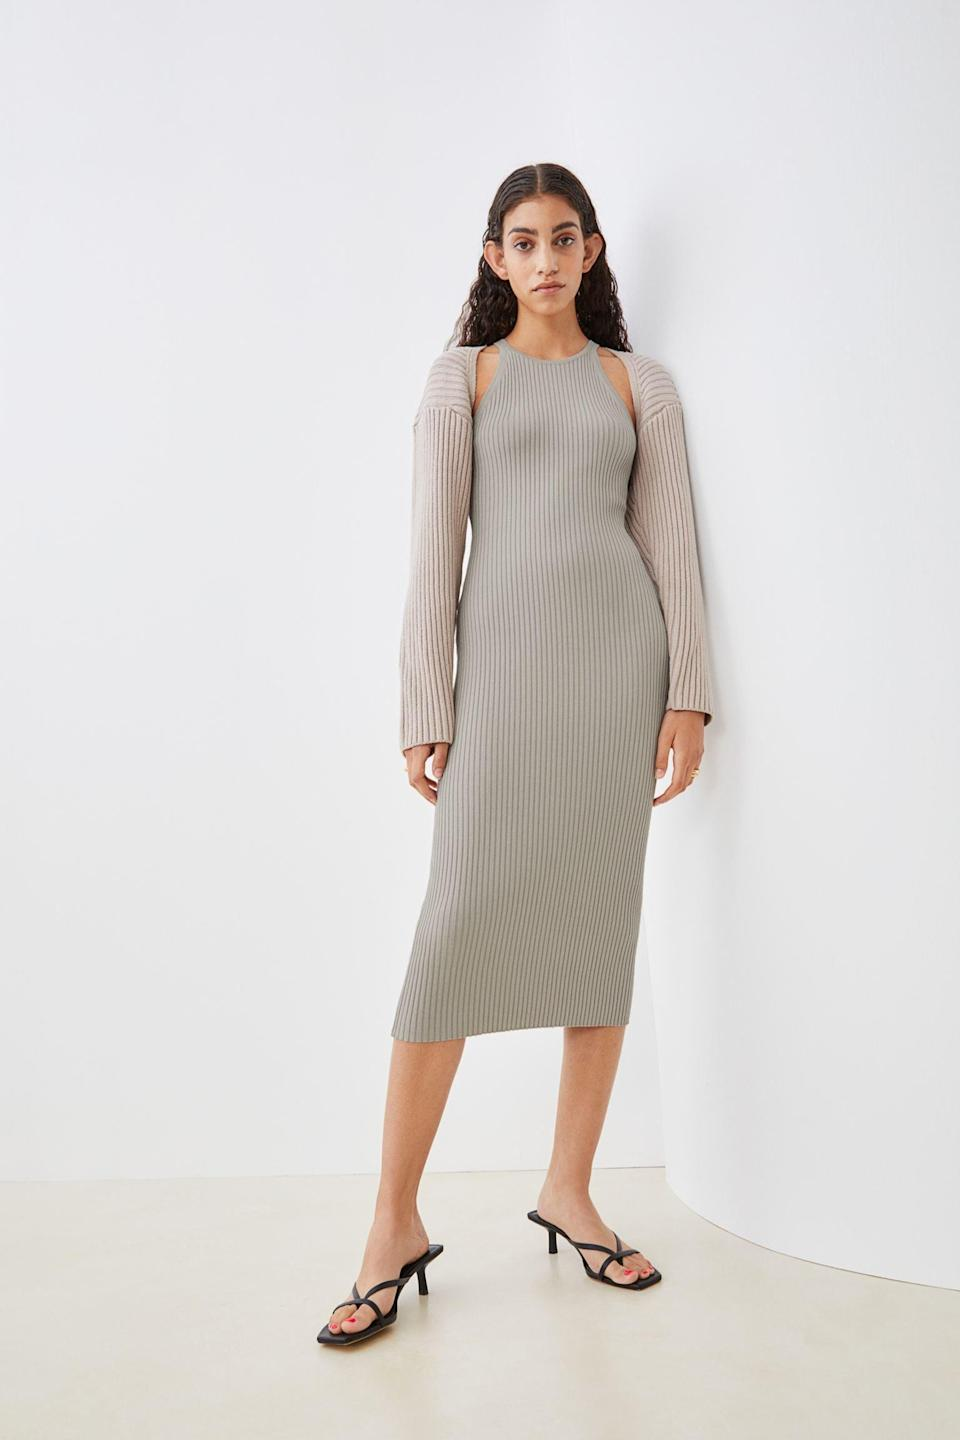 <p>How stunning will this <span>H&amp;M Rib-Knit Dress</span> ($25, originally $30) look when paired with the <span>H&amp;M Rib-Knit Bolero Sweater</span> ($17, originally $20)? We're in love with this look; all you're missing is a pair of low strappy heels, and you're good to go!</p>